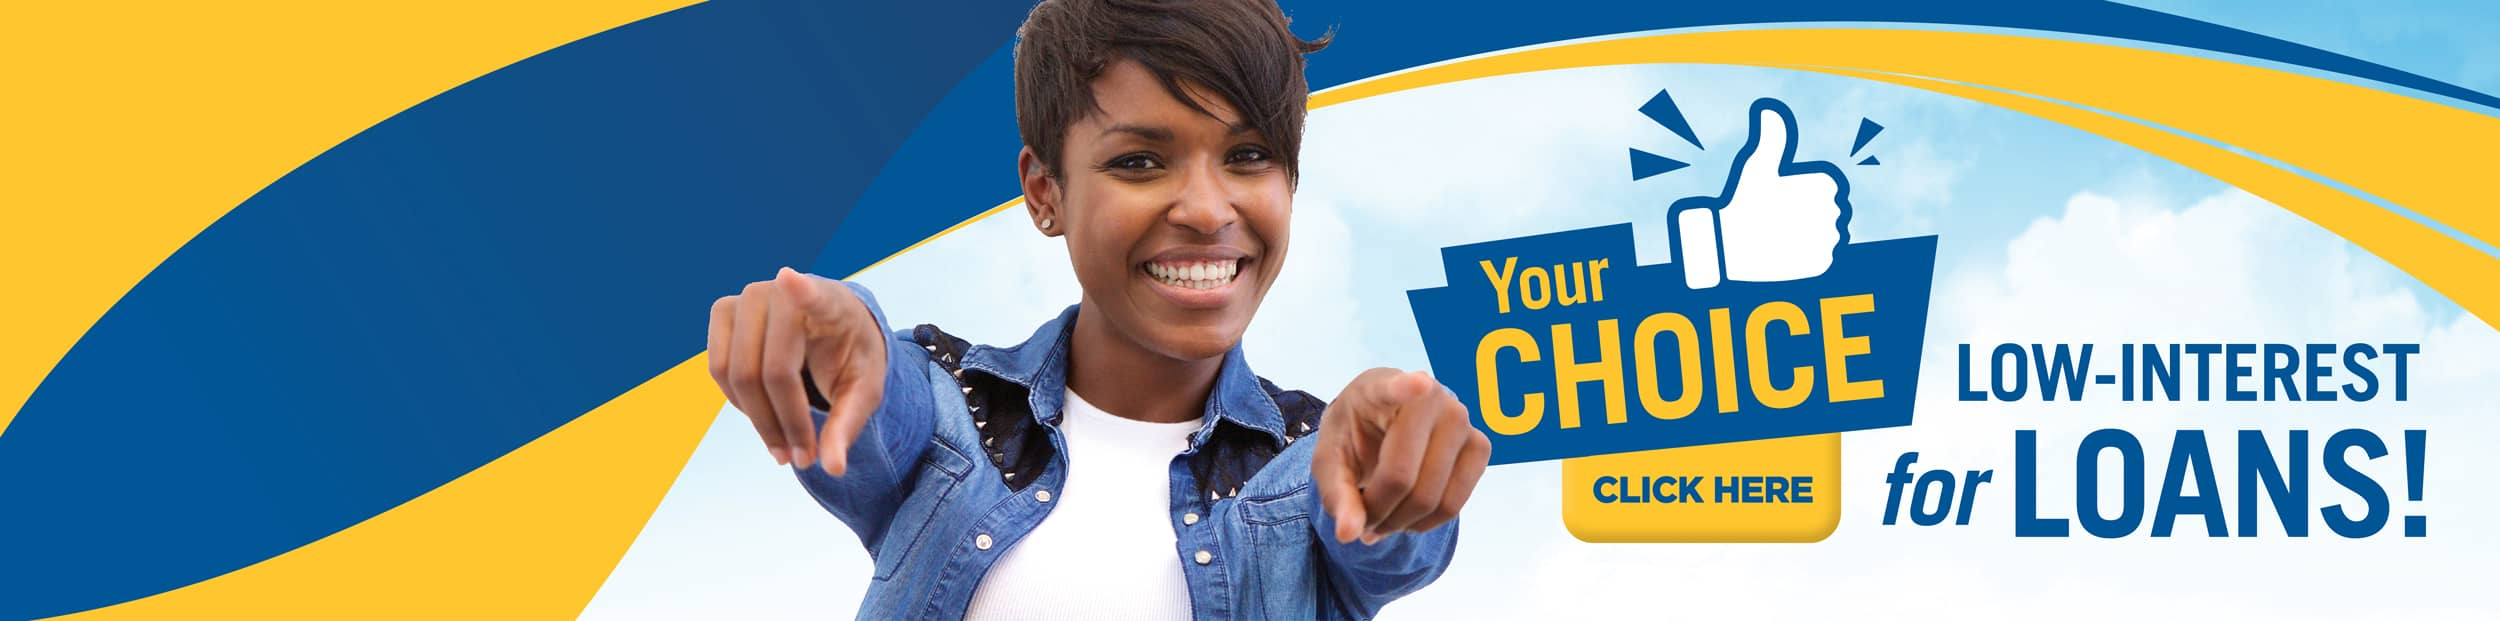 Your choice for low interest loans promotional banner featuring woman pointing at you with two hands.